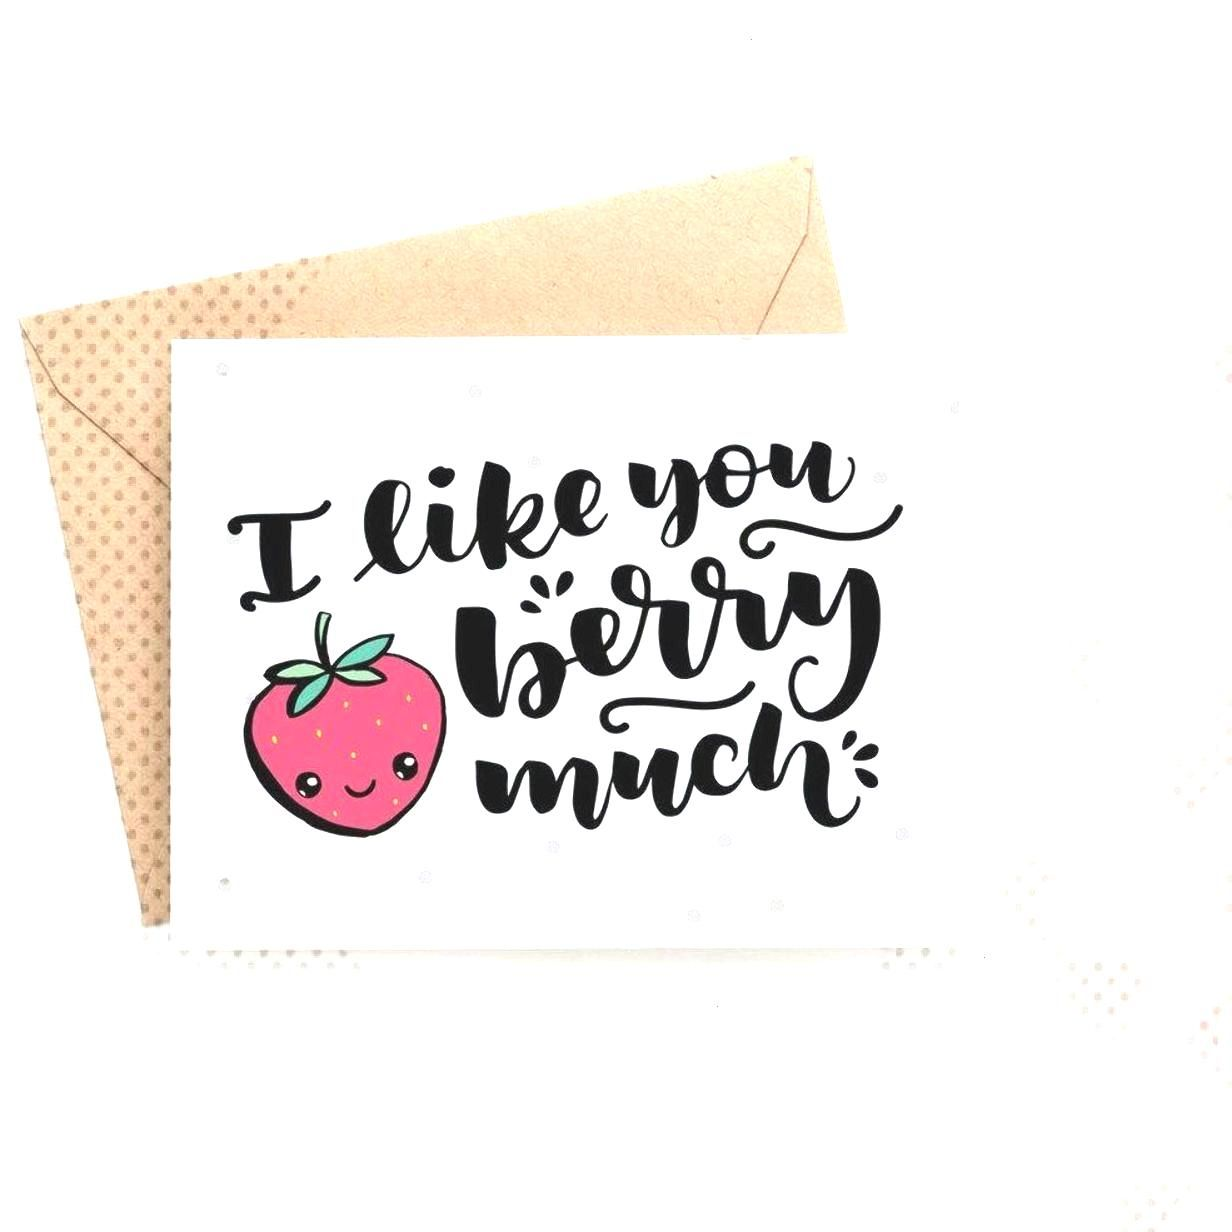 Surprise your valentine with this adorable hand-drawn Valentines Day card. It says I like you berr